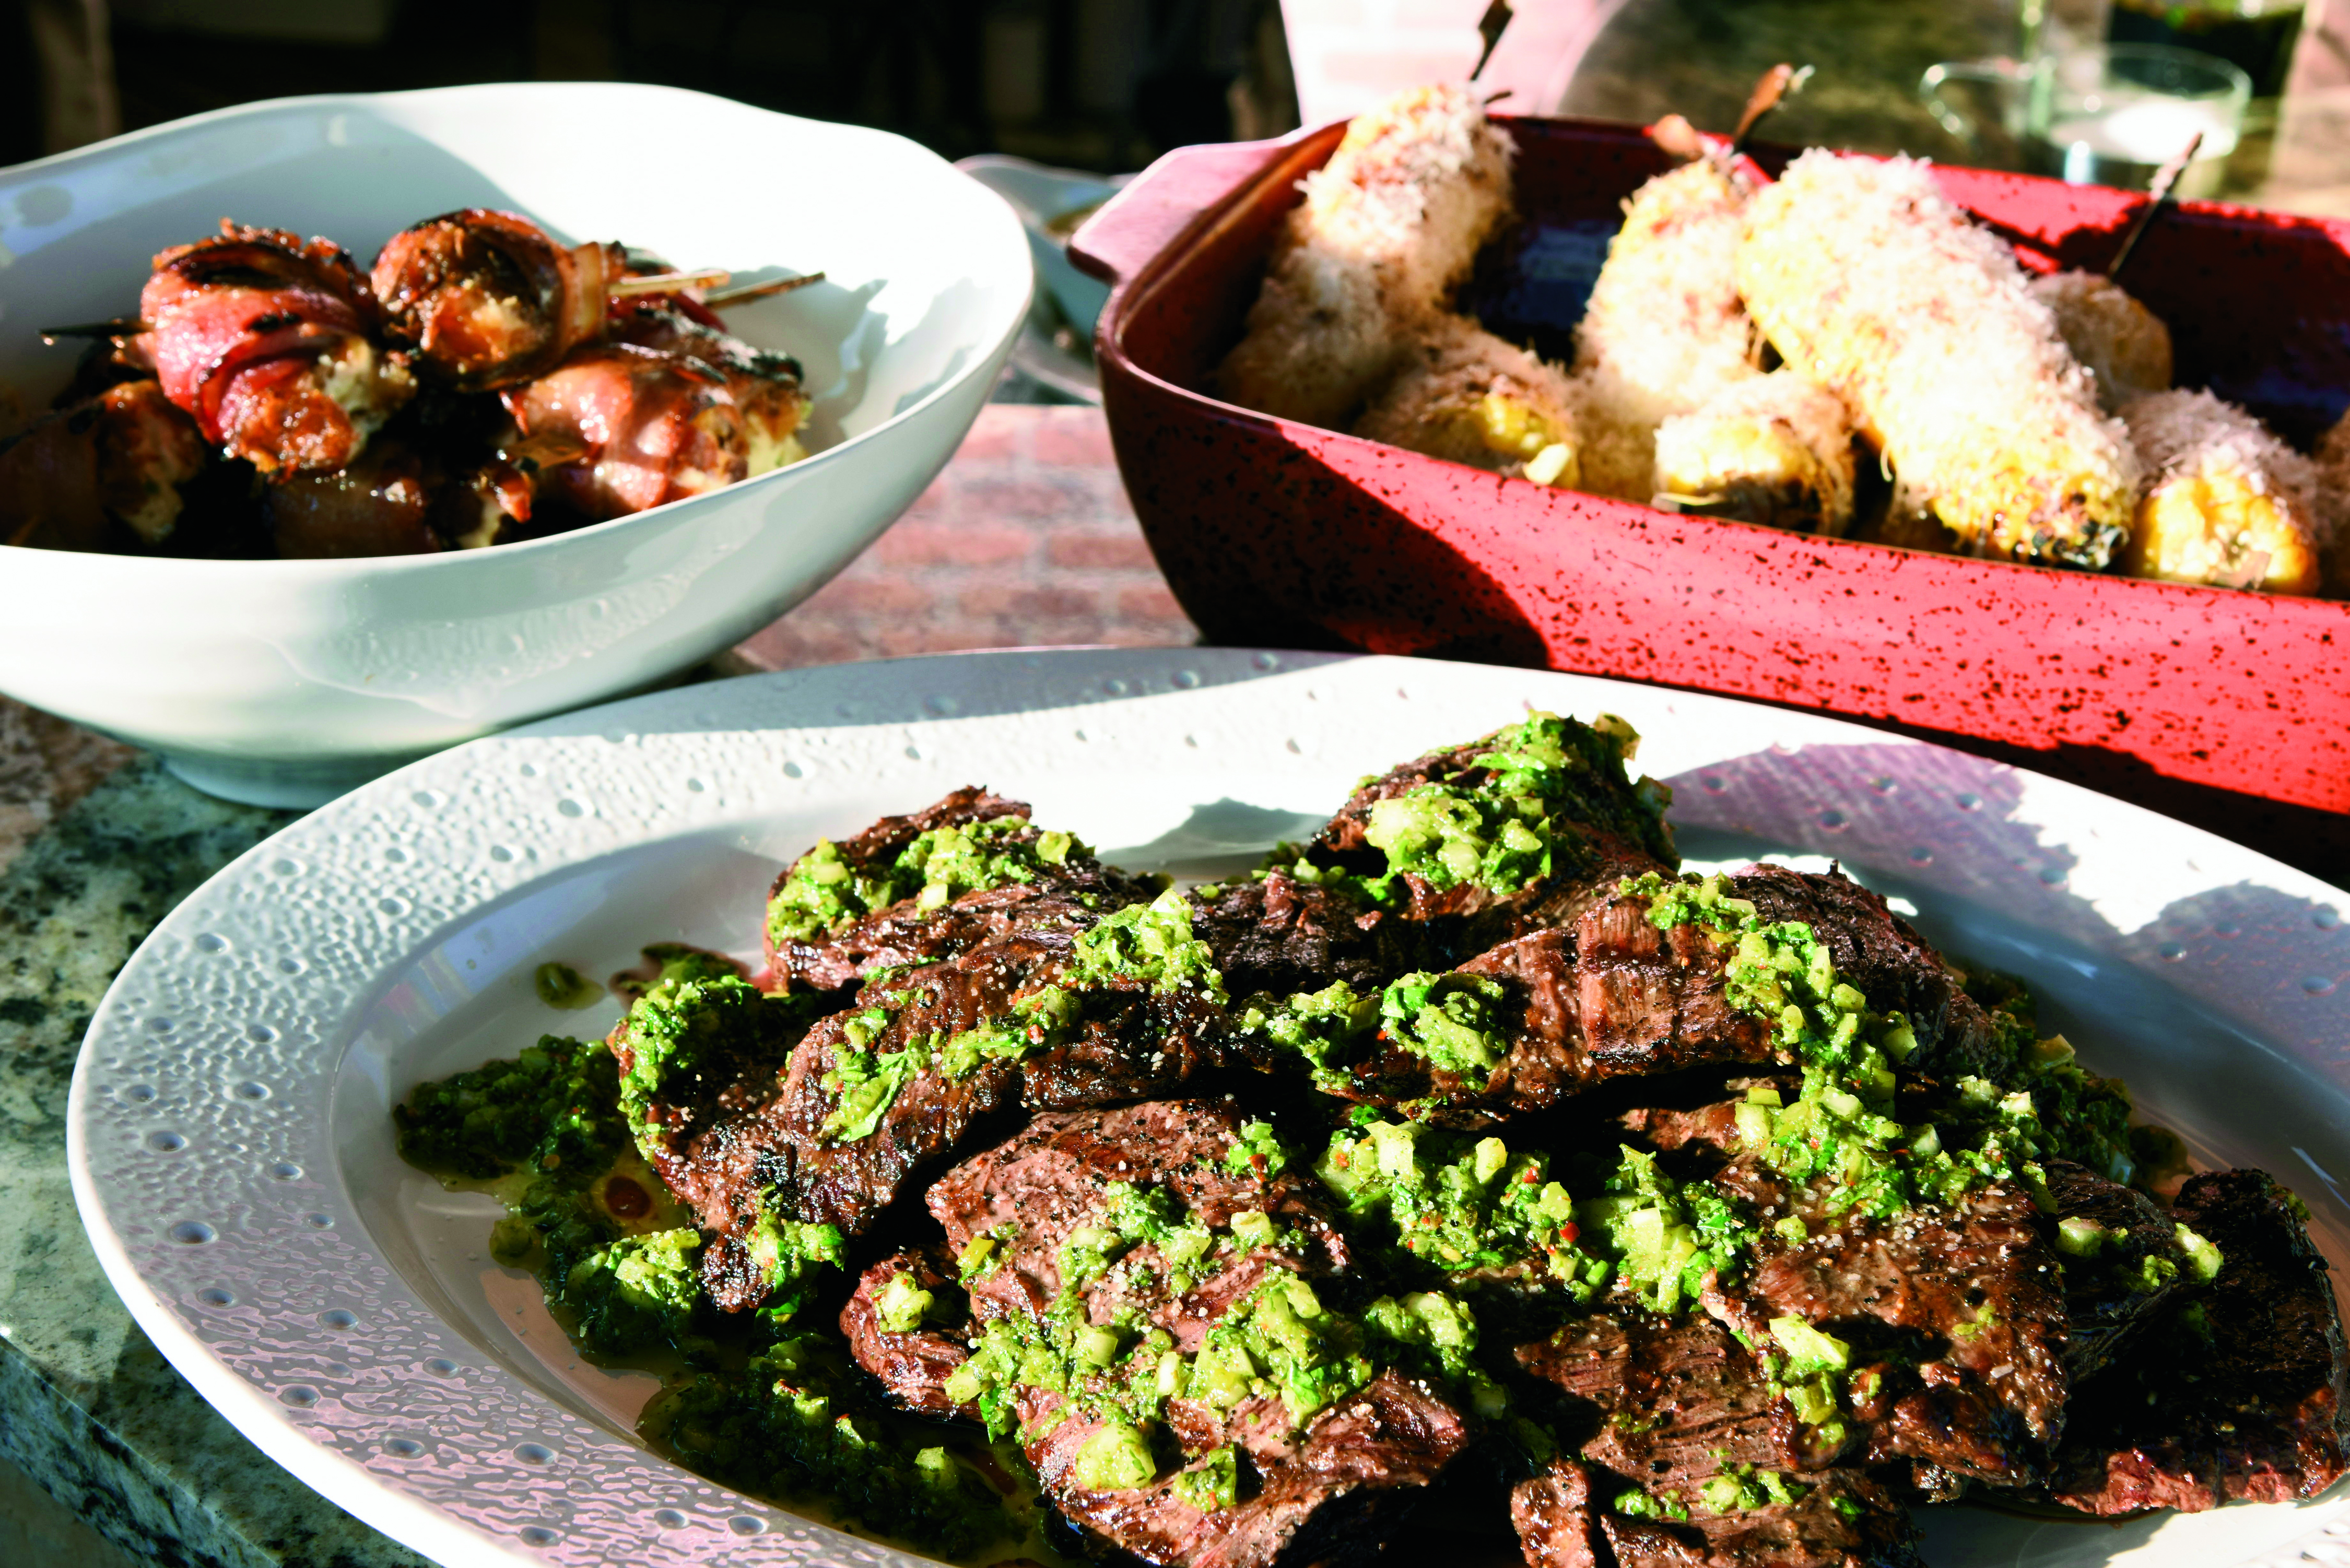 (clockwise from left) Stuffed dates. Mexican-style corn on the cob, Carne asada with chimichurri sauce